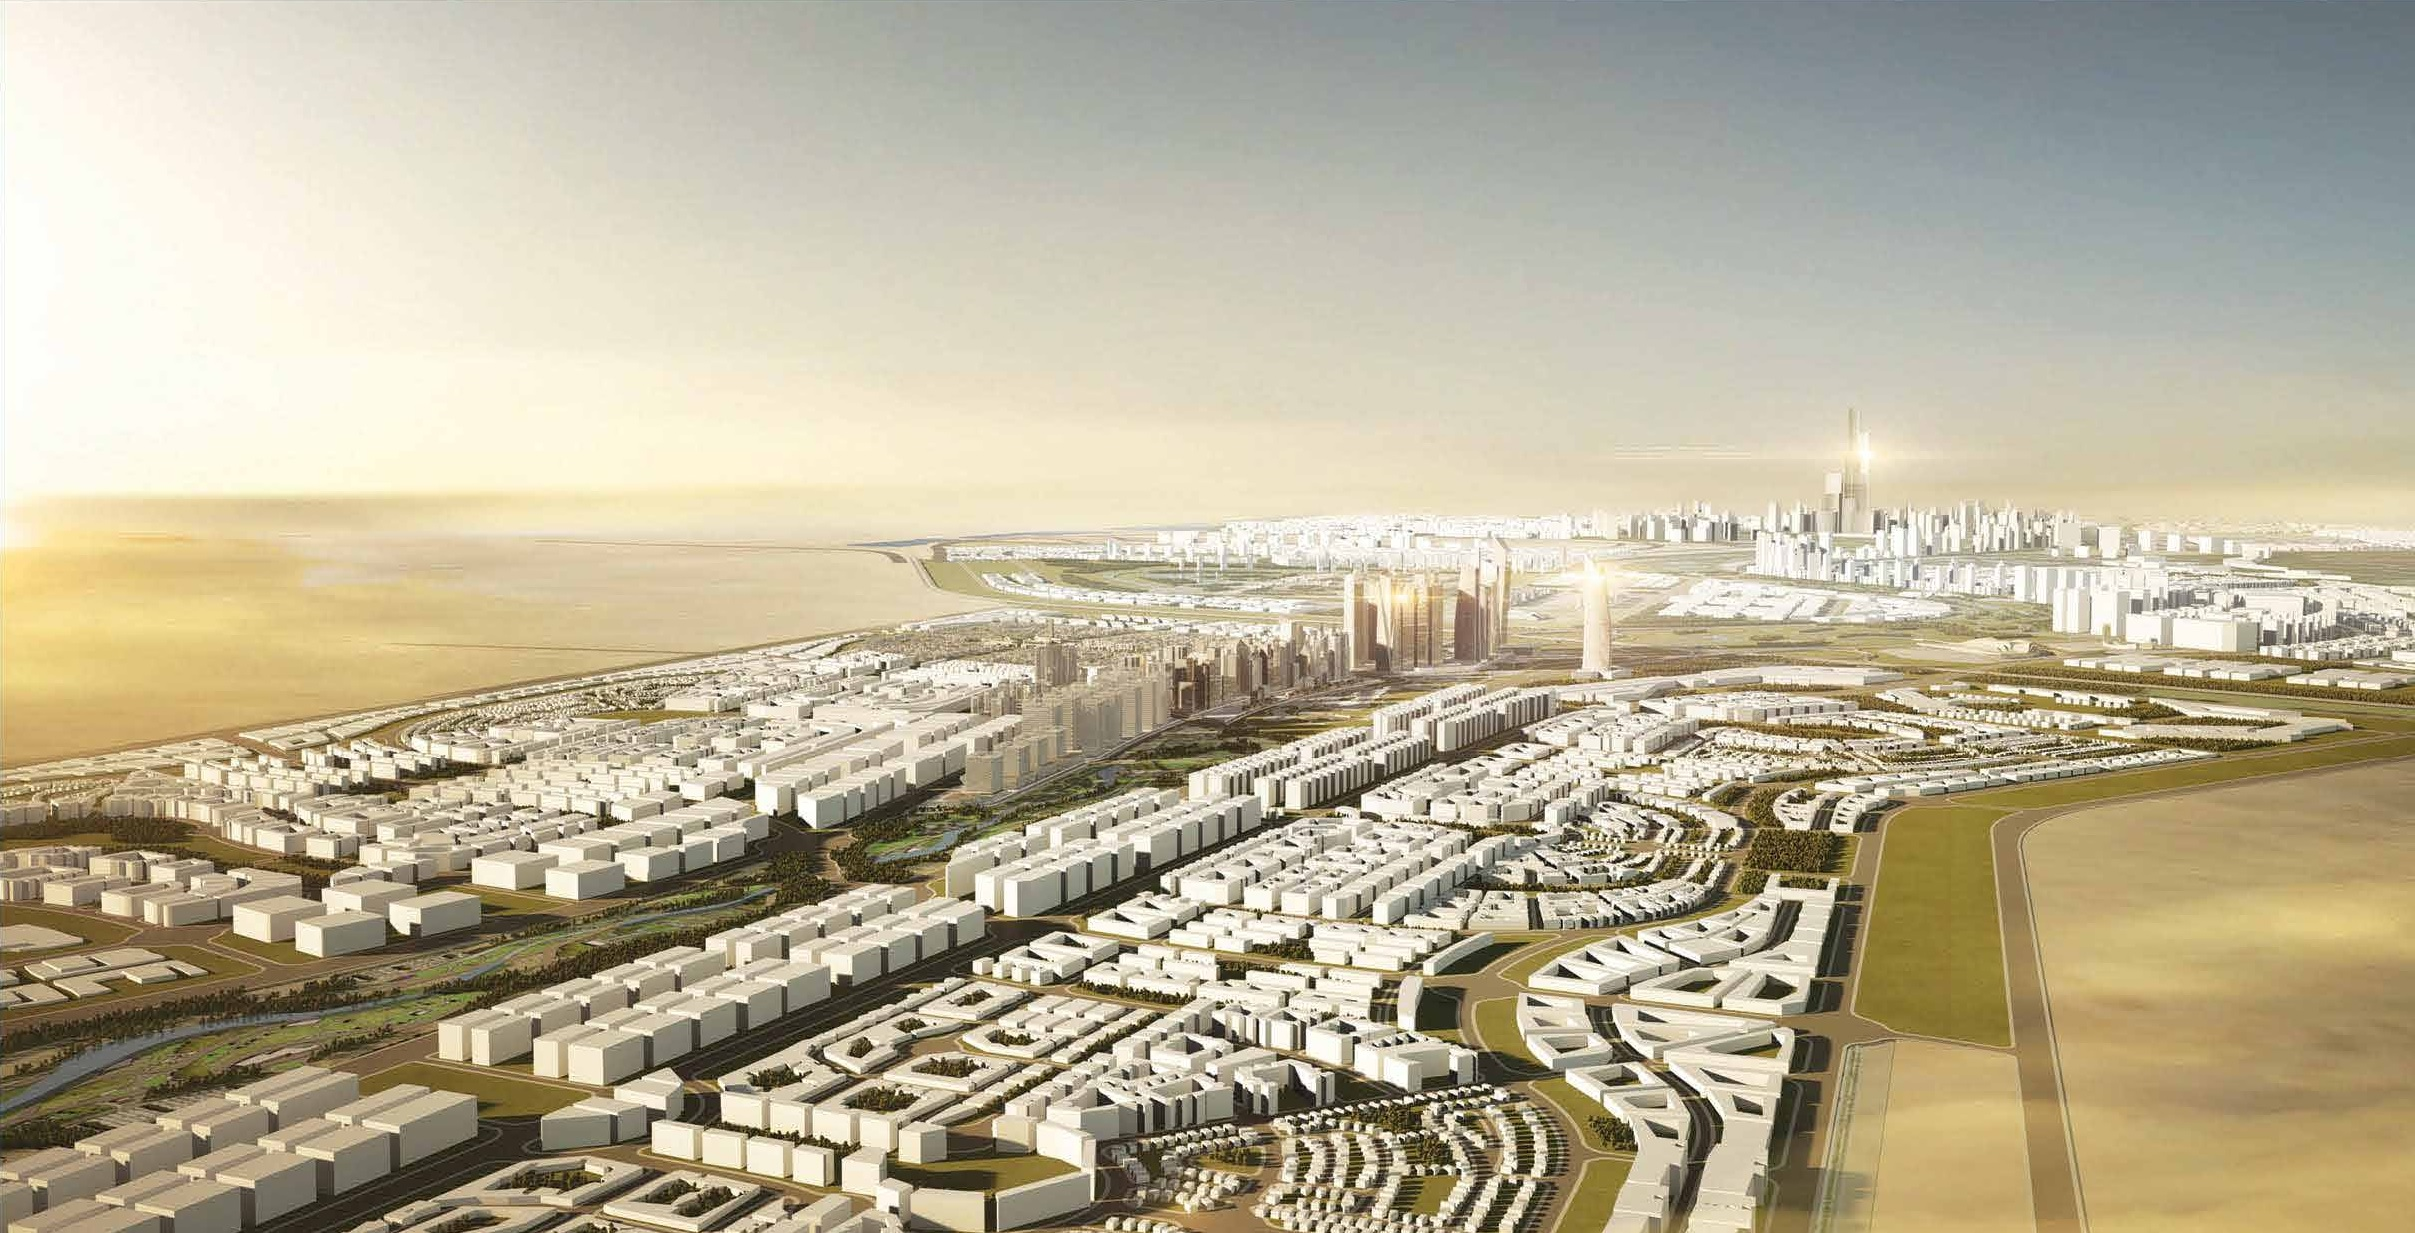 WHY CAIRO'S NEW ADMINISTRATIVE CAPITAL